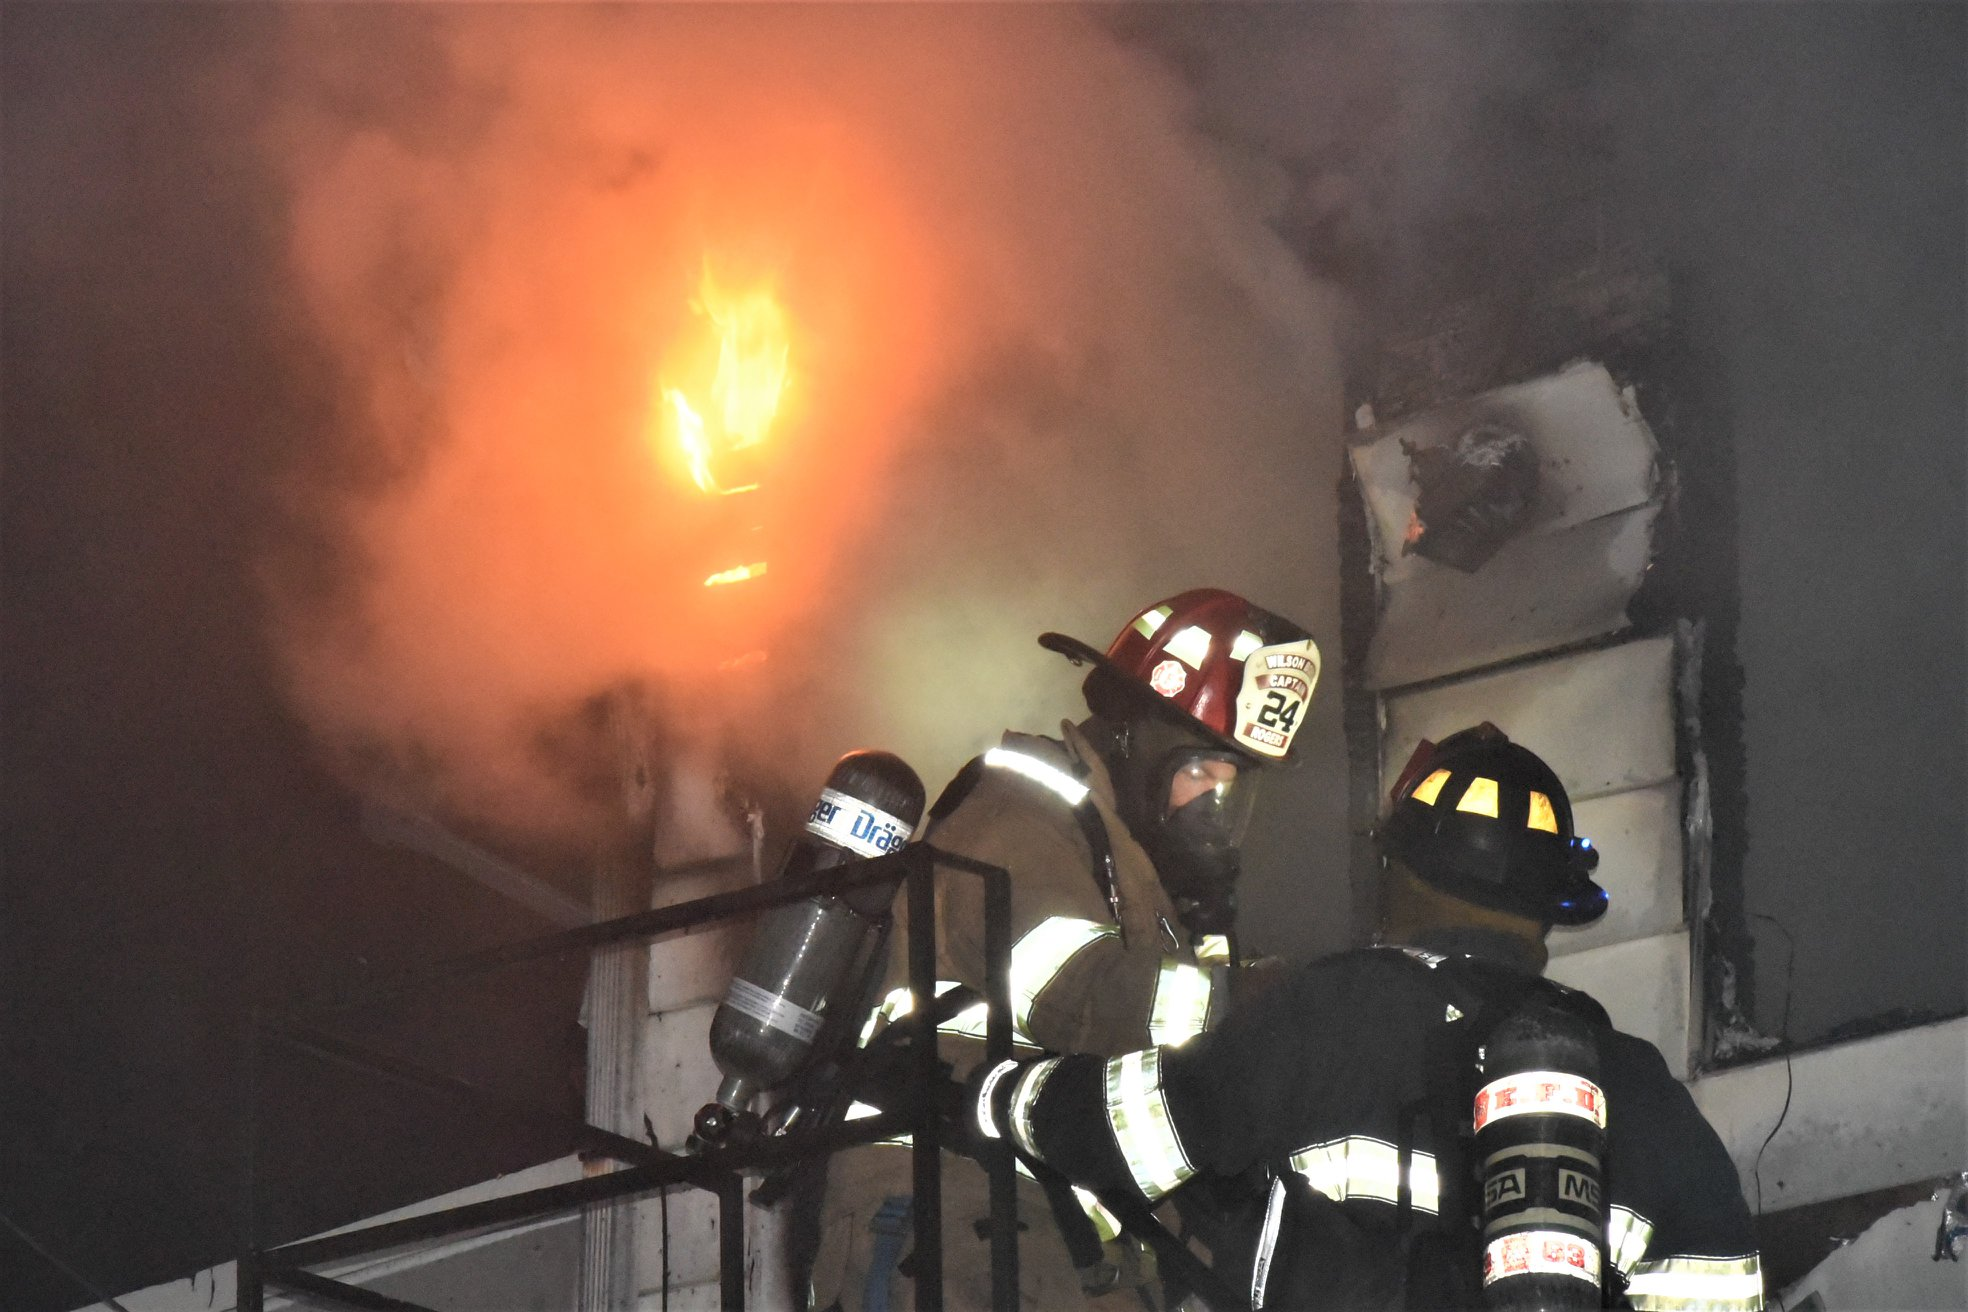 Family dog perishes after alerting residents to fire: officials